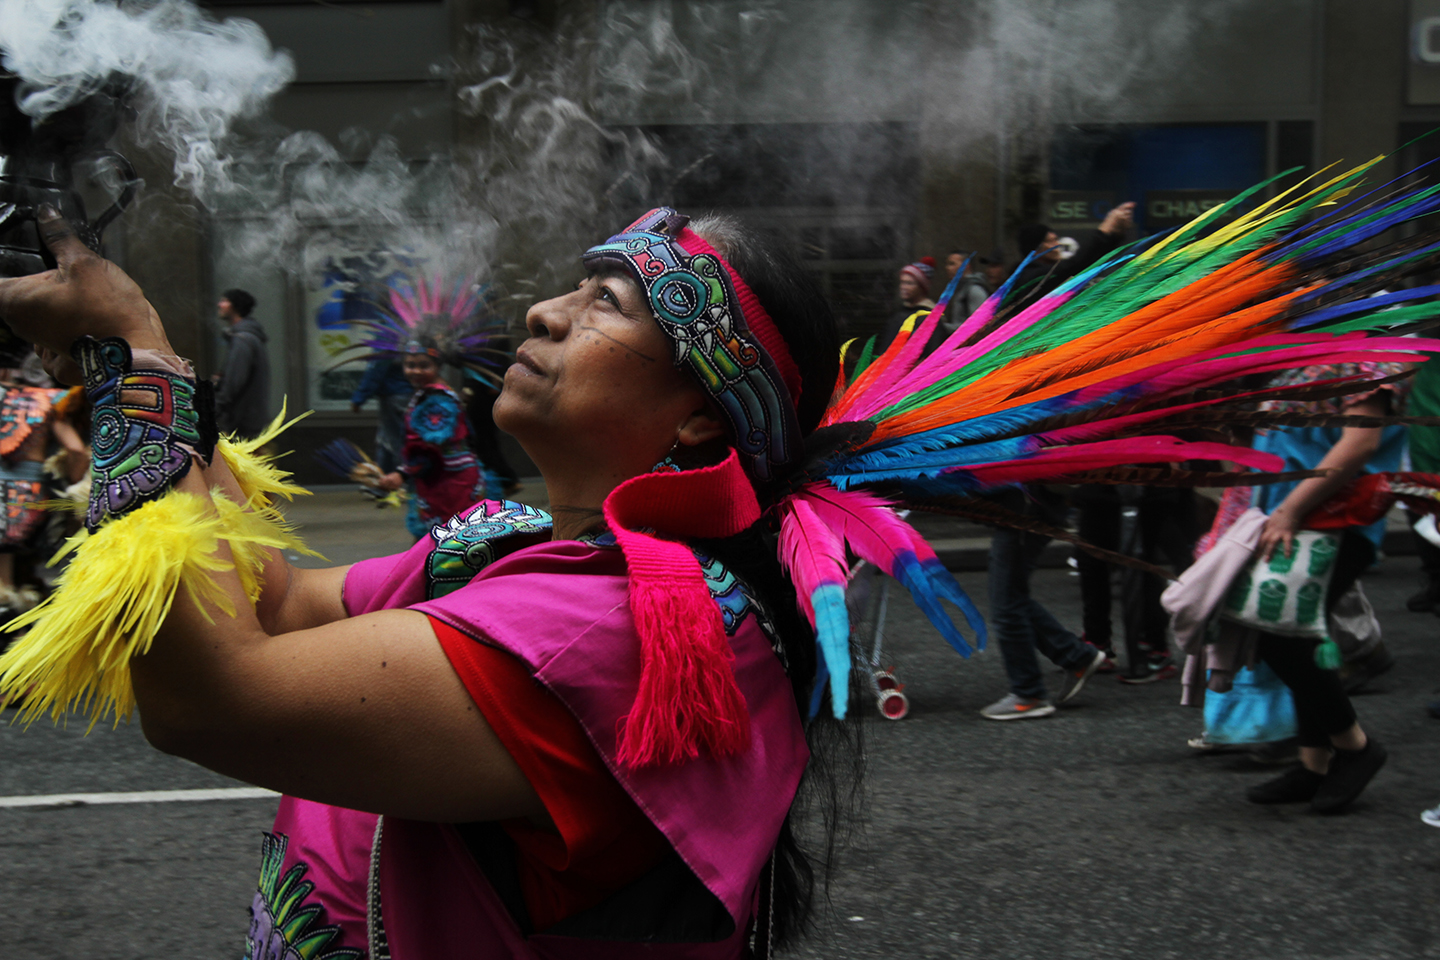 A woman burns ceremonial smoke during a May Day march in Seattle, WA.